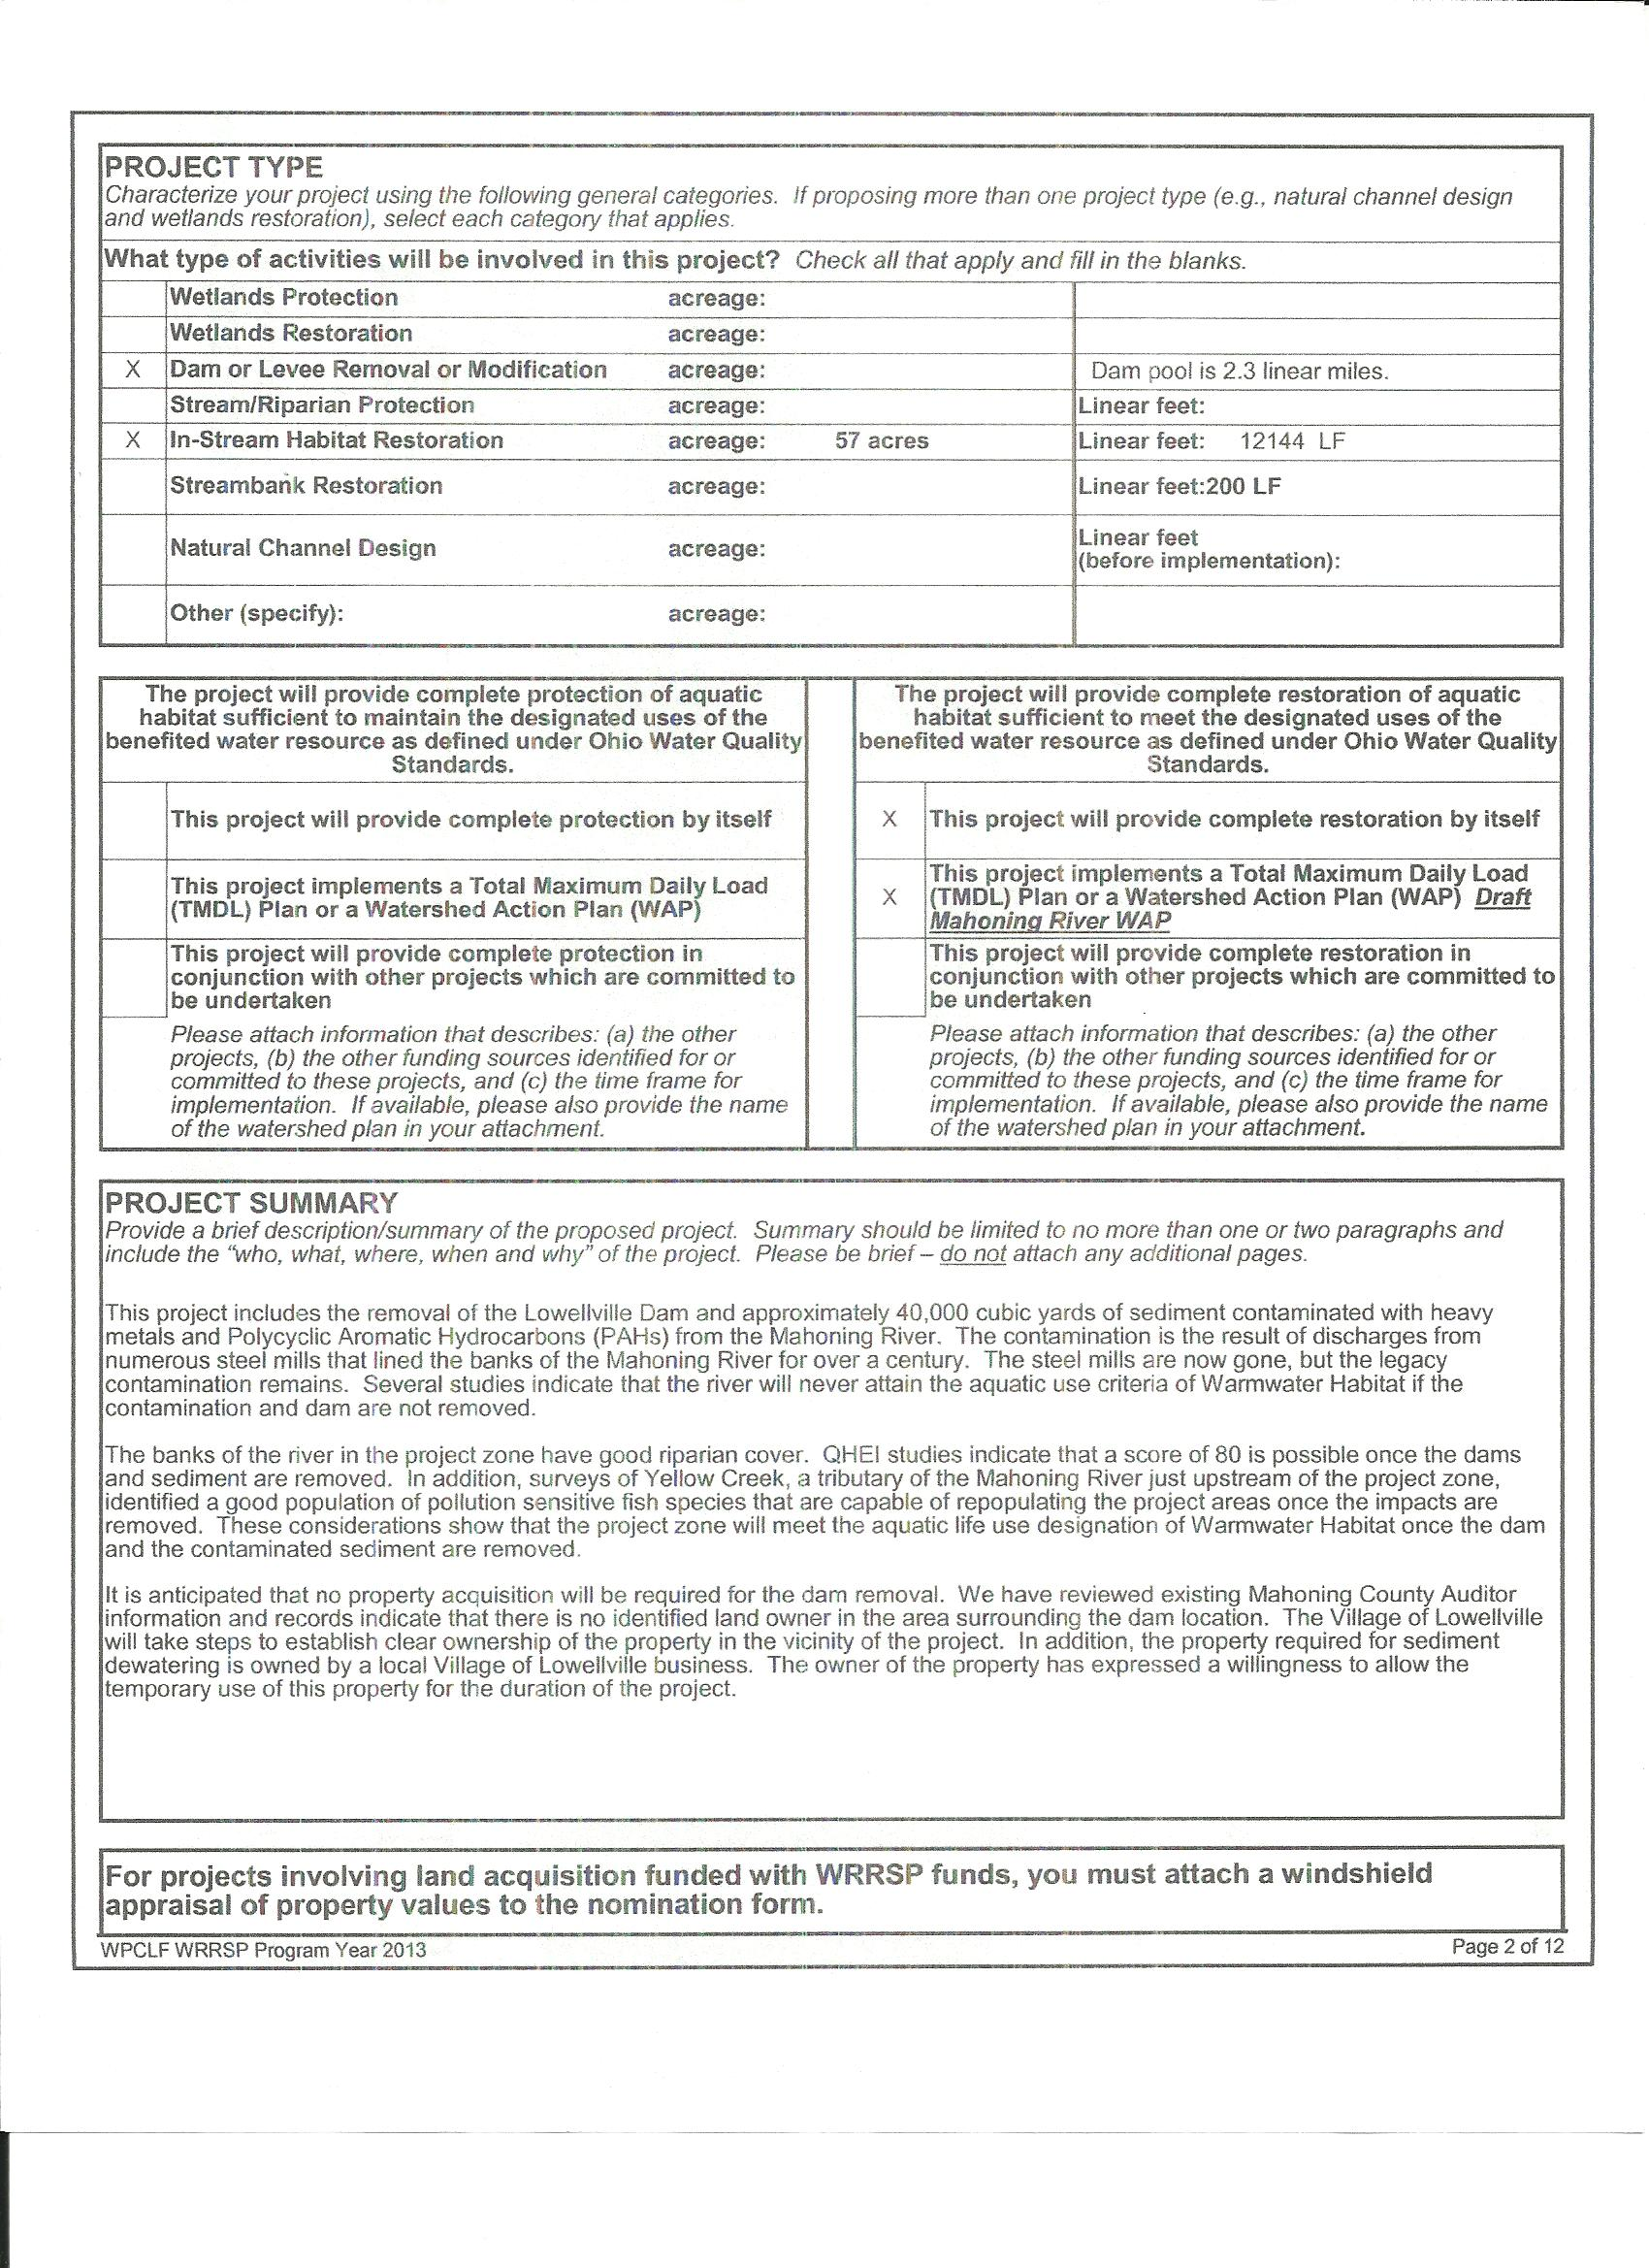 Pollution Control Nomination Form | Village of Lowellville